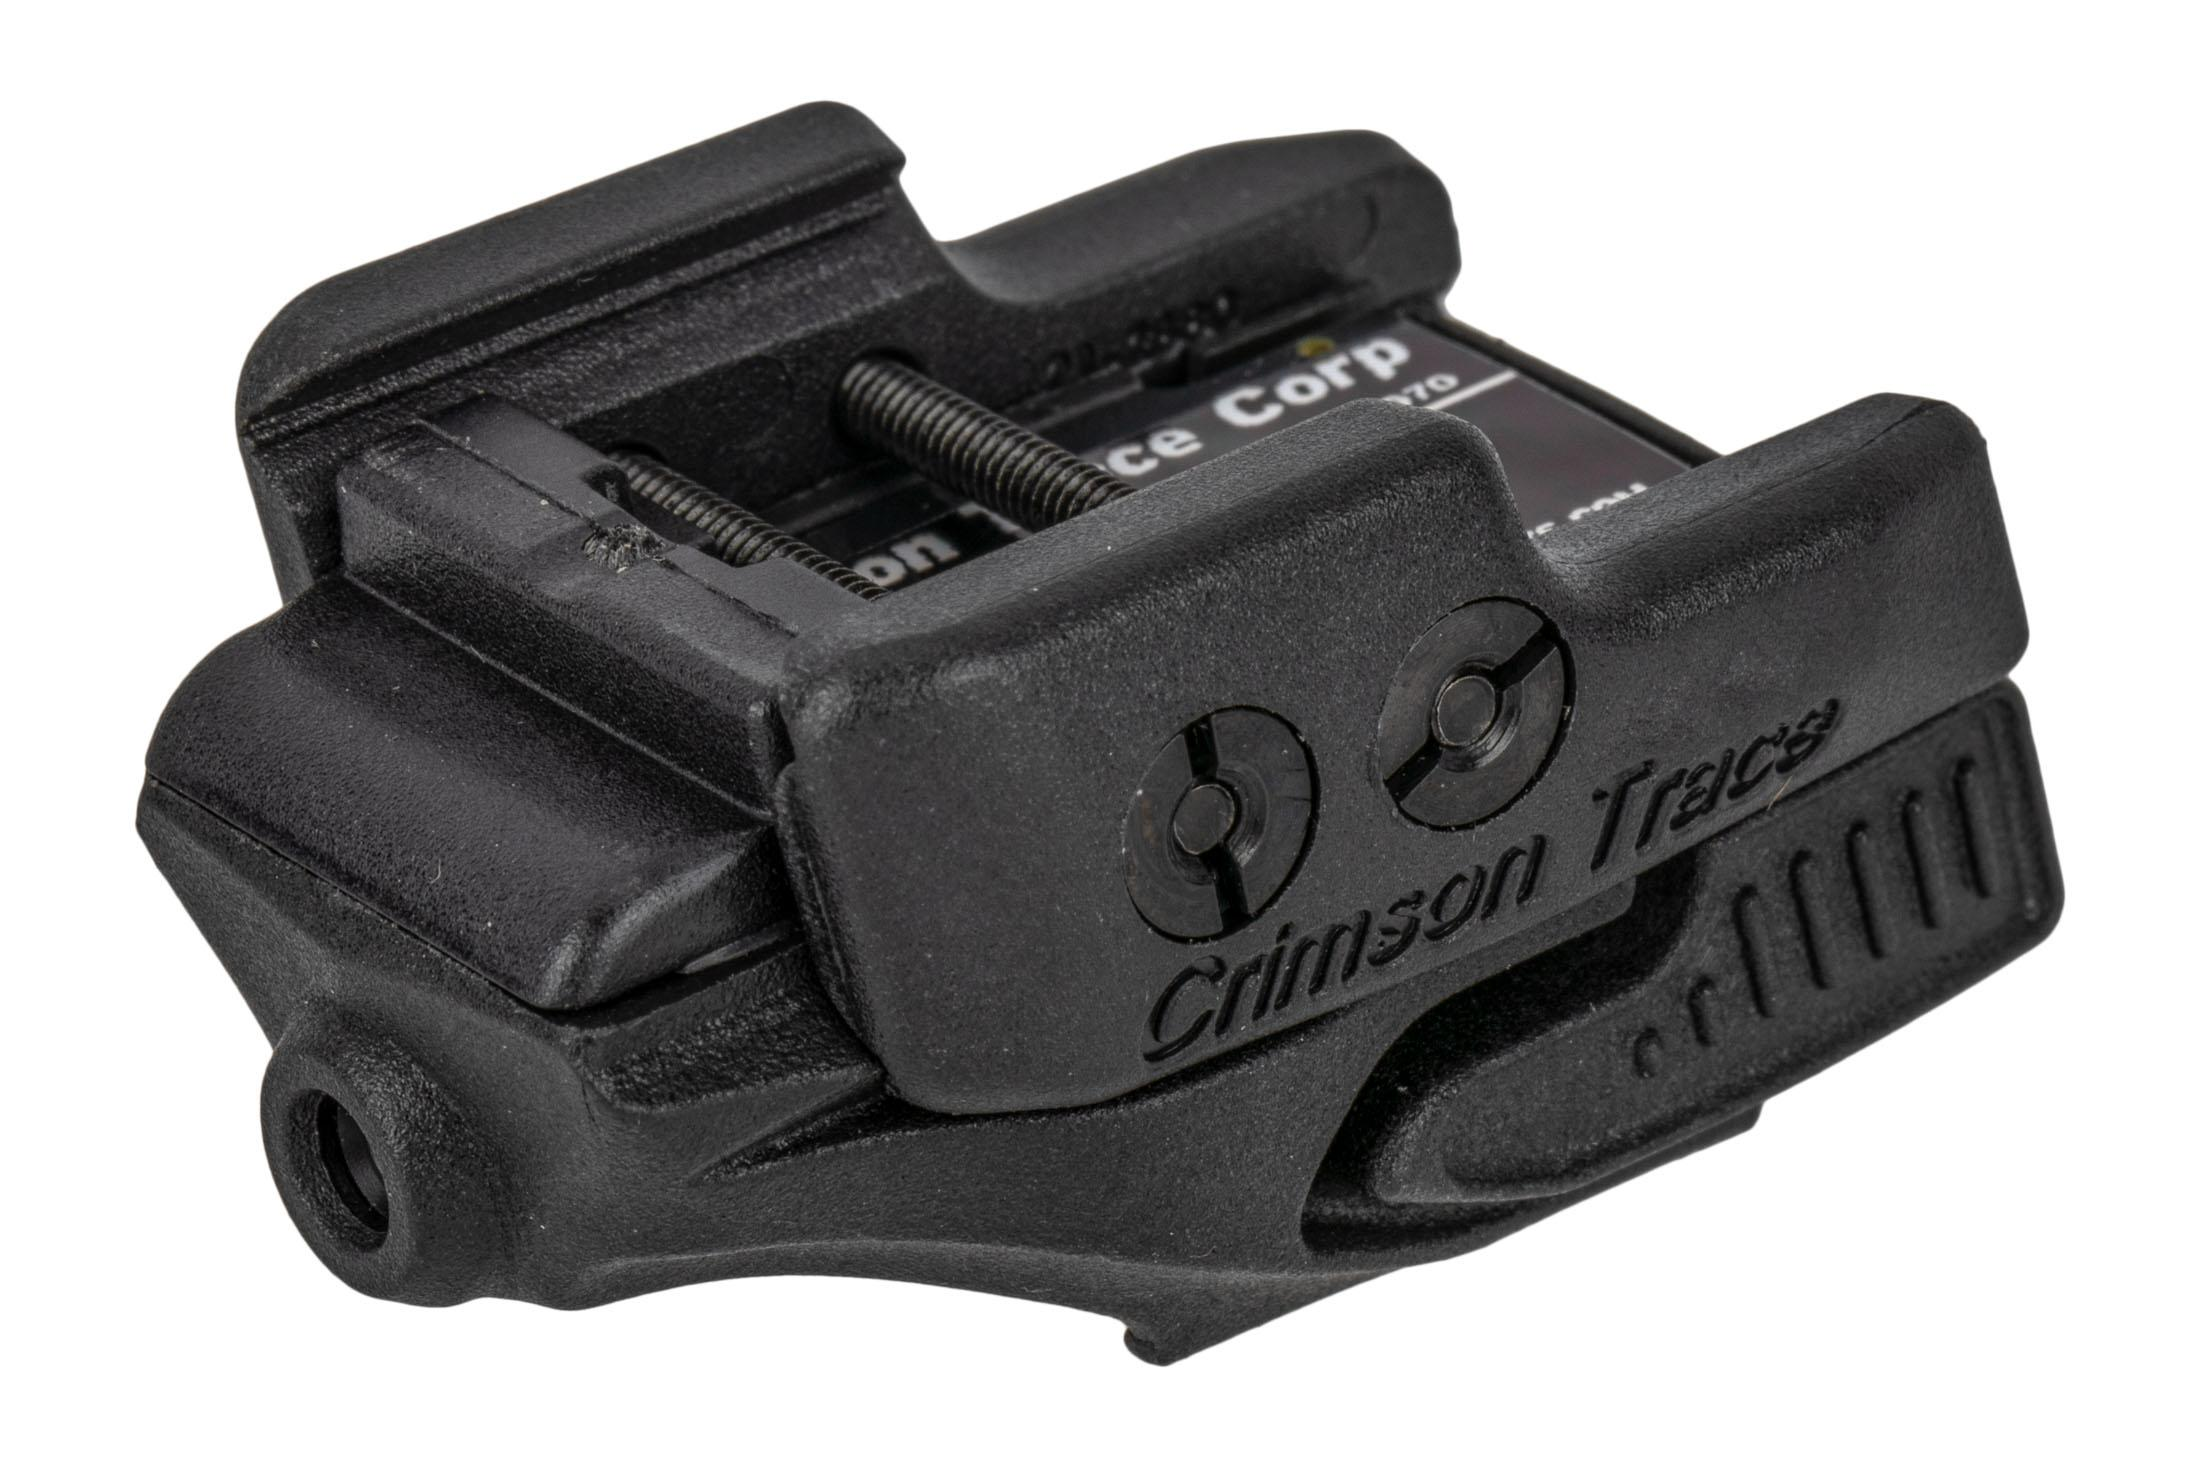 Crimson Trace Rail Master universal red laser sight with black body for handguns and carbines